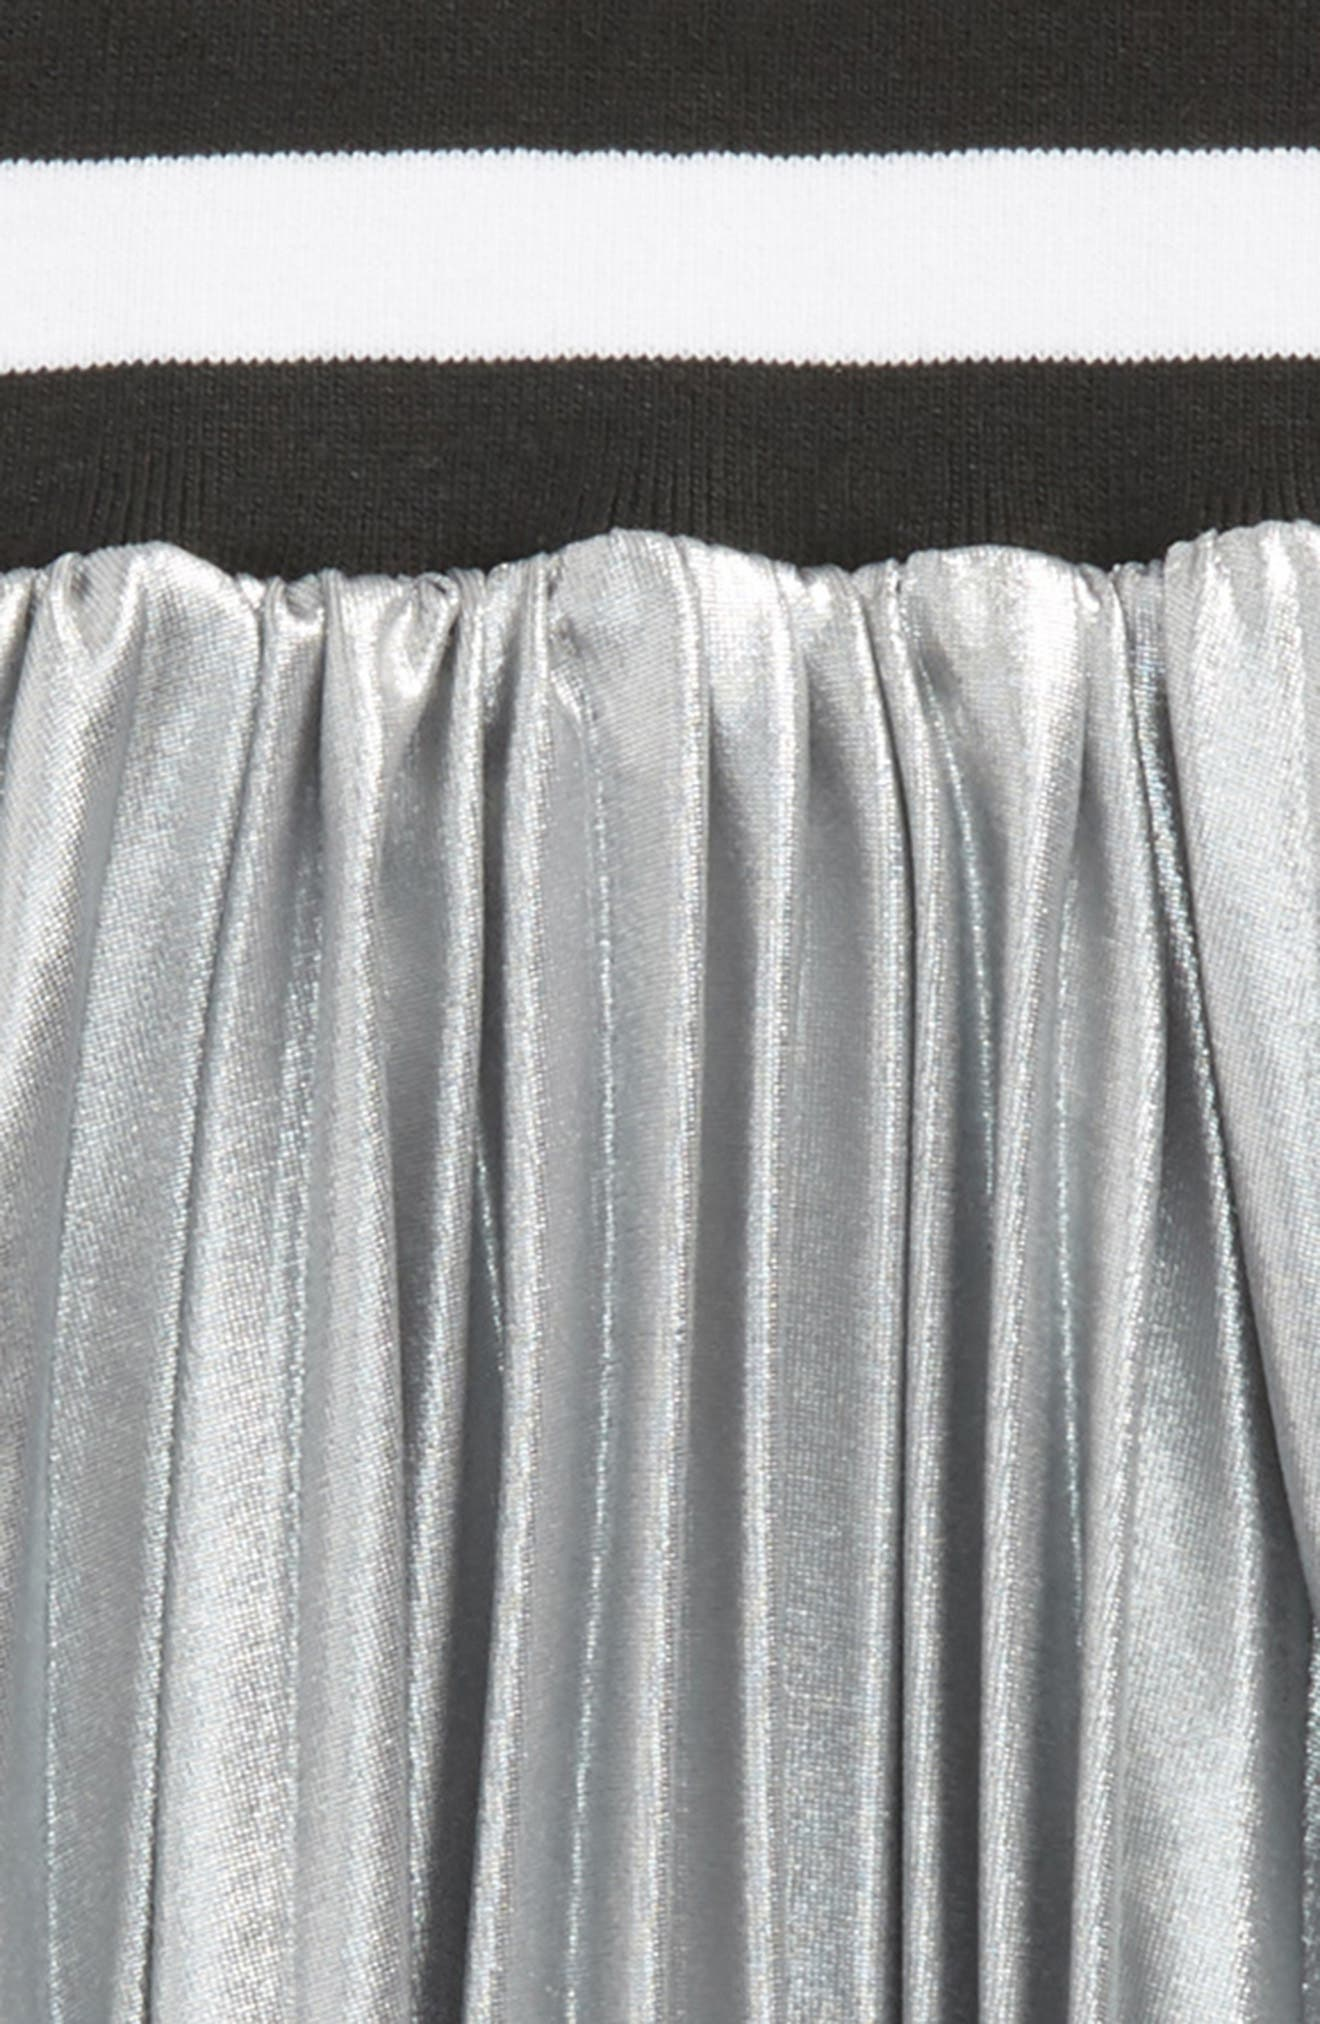 Aly Skirt,                             Alternate thumbnail 2, color,                             Silver